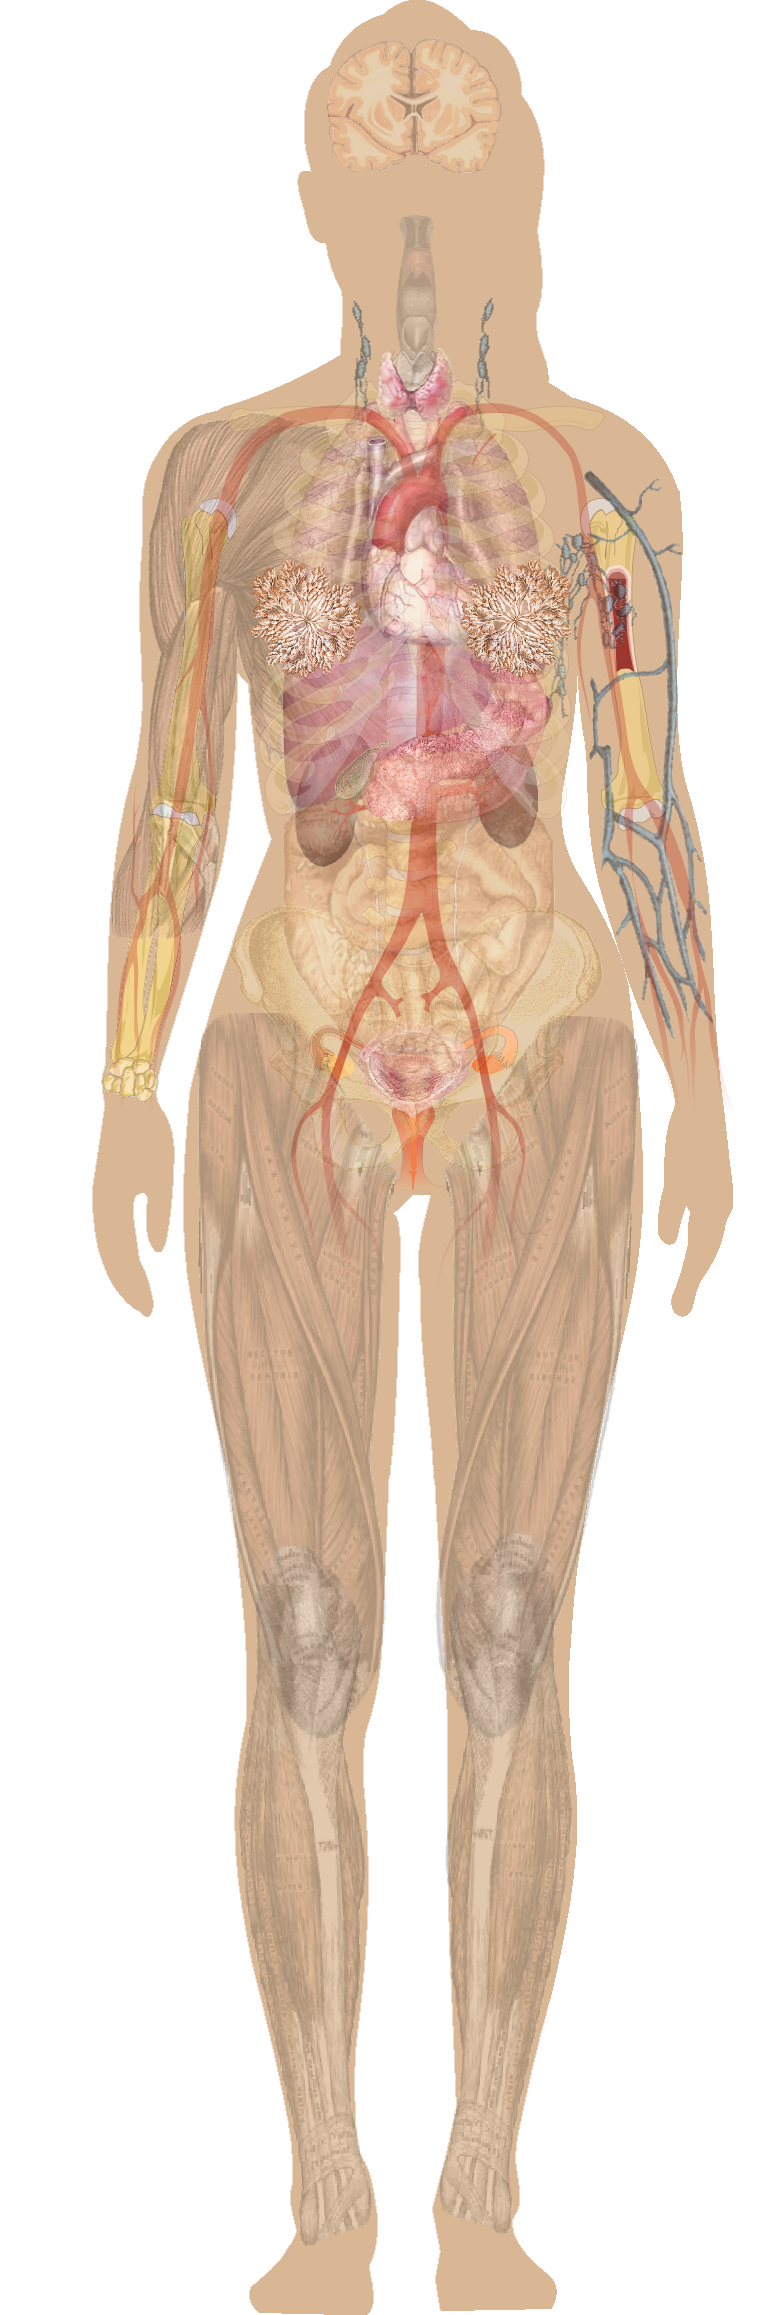 Anatomy Vector Full Body Transparent Png Clipart Free Download